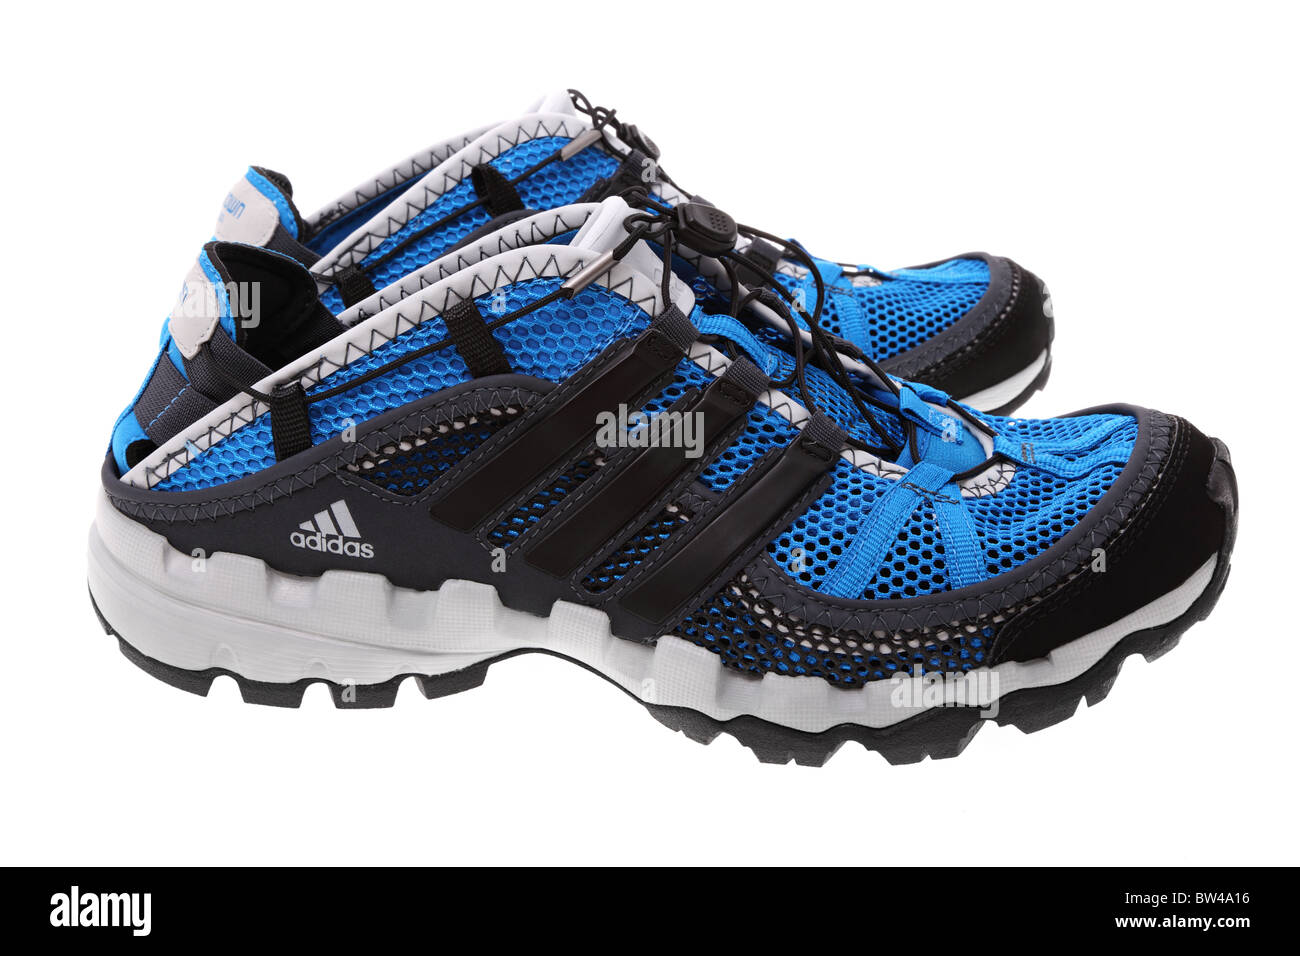 Adidas Hydroterra Shandal Shoes